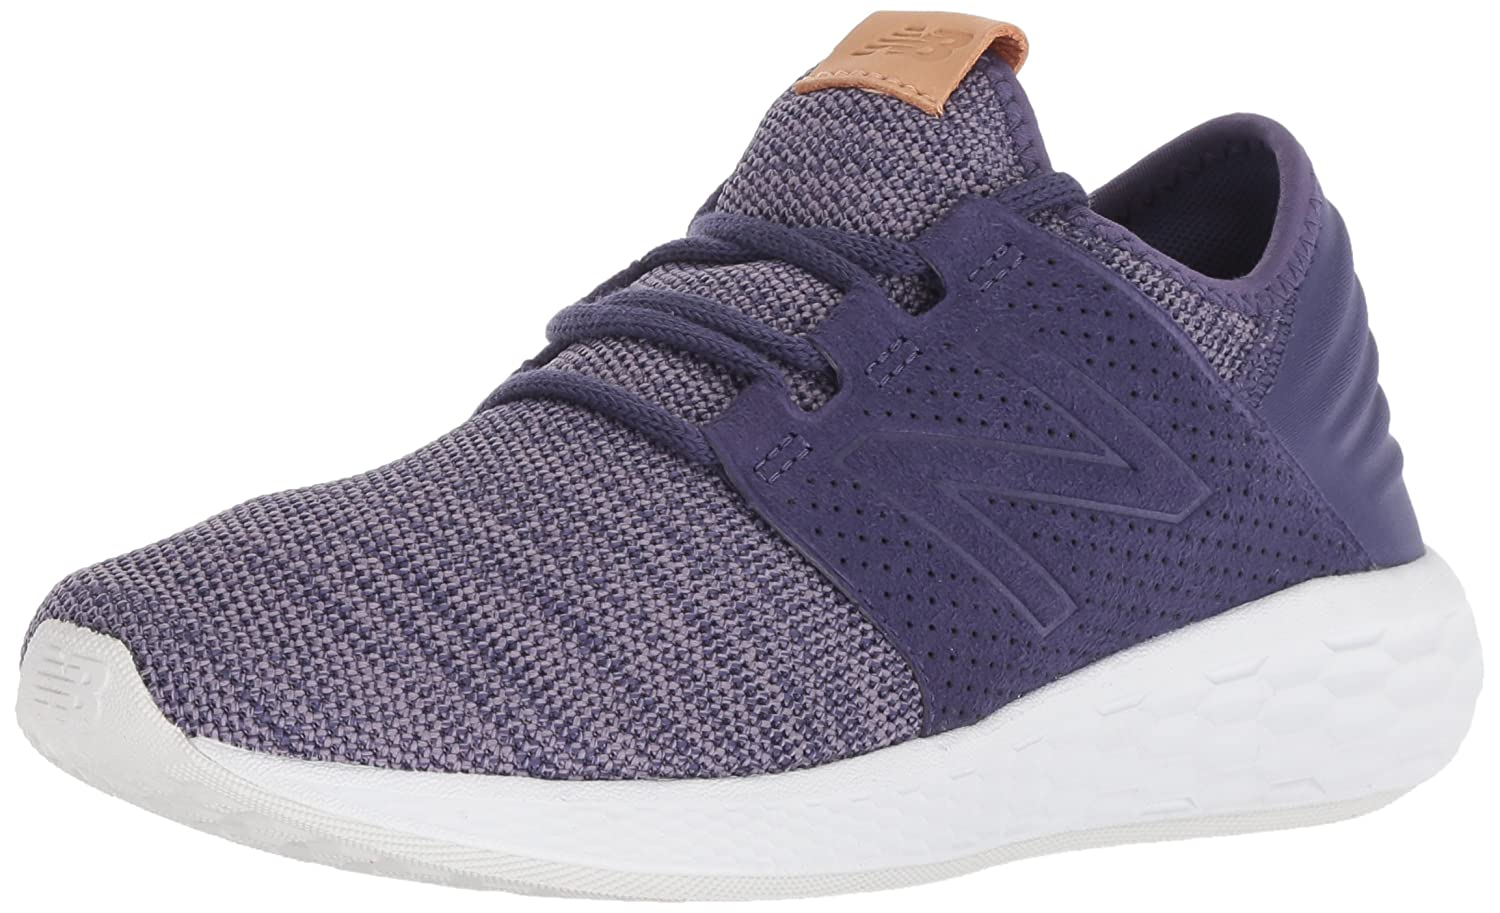 New Balance Women's Cruz V2 Fresh Foam Running Shoe B075R3RHZW 8 B(M) US|Wild Indigo